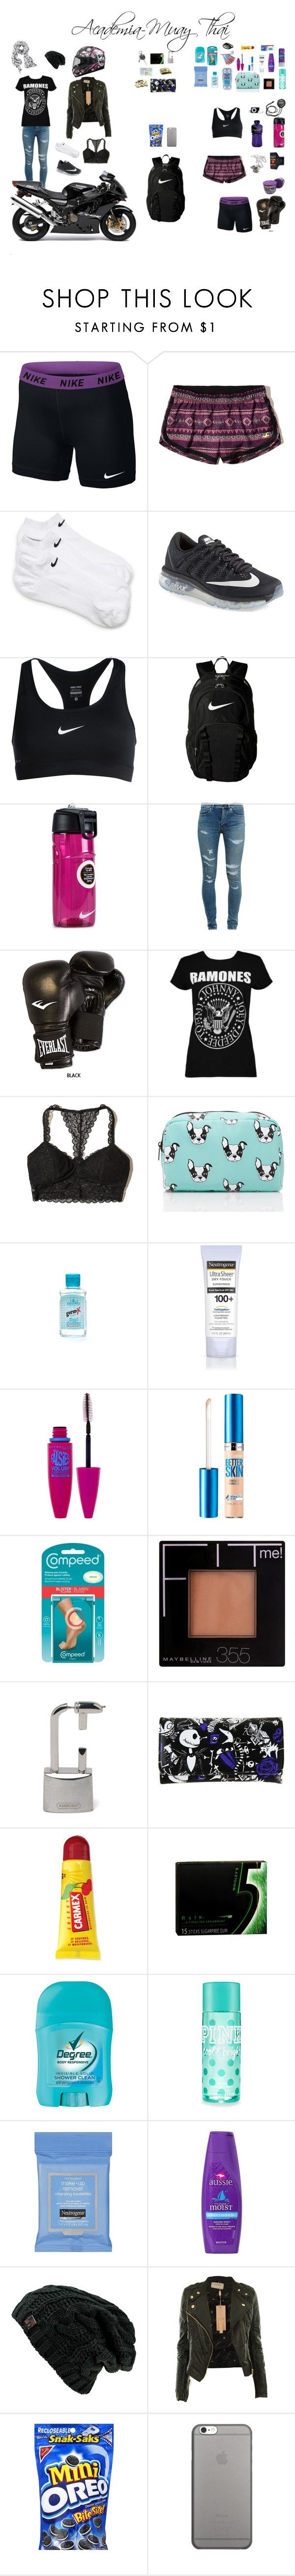 """Academia-Muay thai"" by biih-fferreira ❤ liked on Polyvore featuring NIKE, Hollister Co., Yves Saint Laurent, Everlast, Boohoo, Forever 21, Colgate, Neutrogena, Maybelline and Disney"